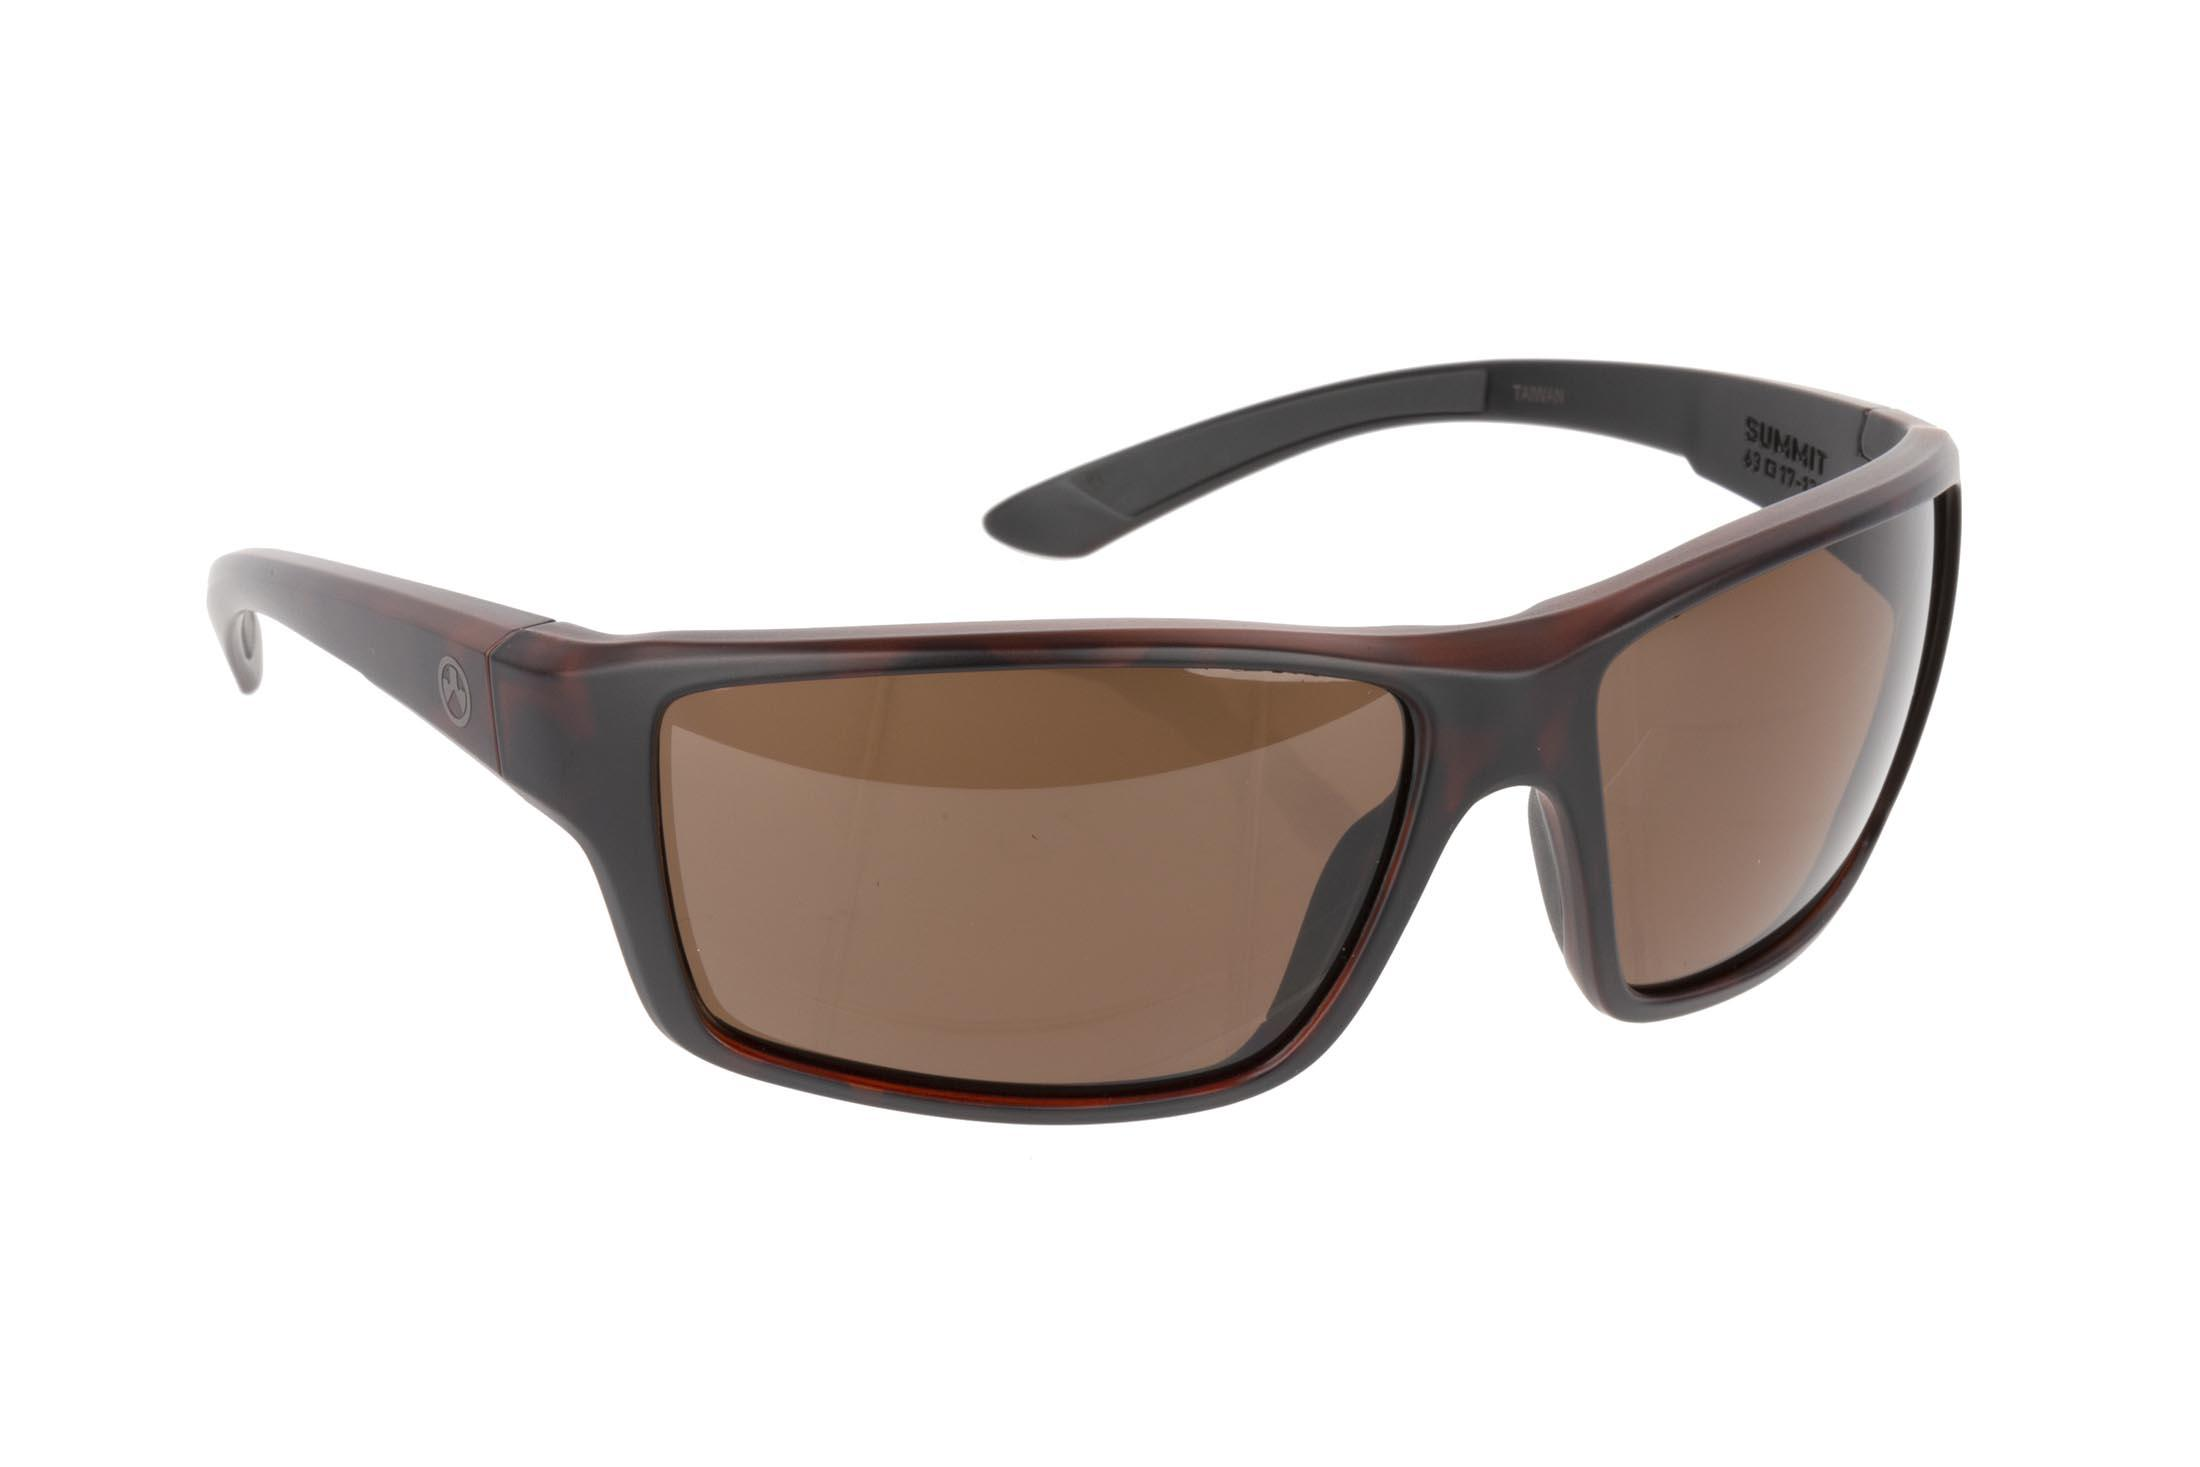 Magpul Summit ballistic sunglasses with gray frame and Bronze polarized lenses are ideal for small-to-medium sized shooters